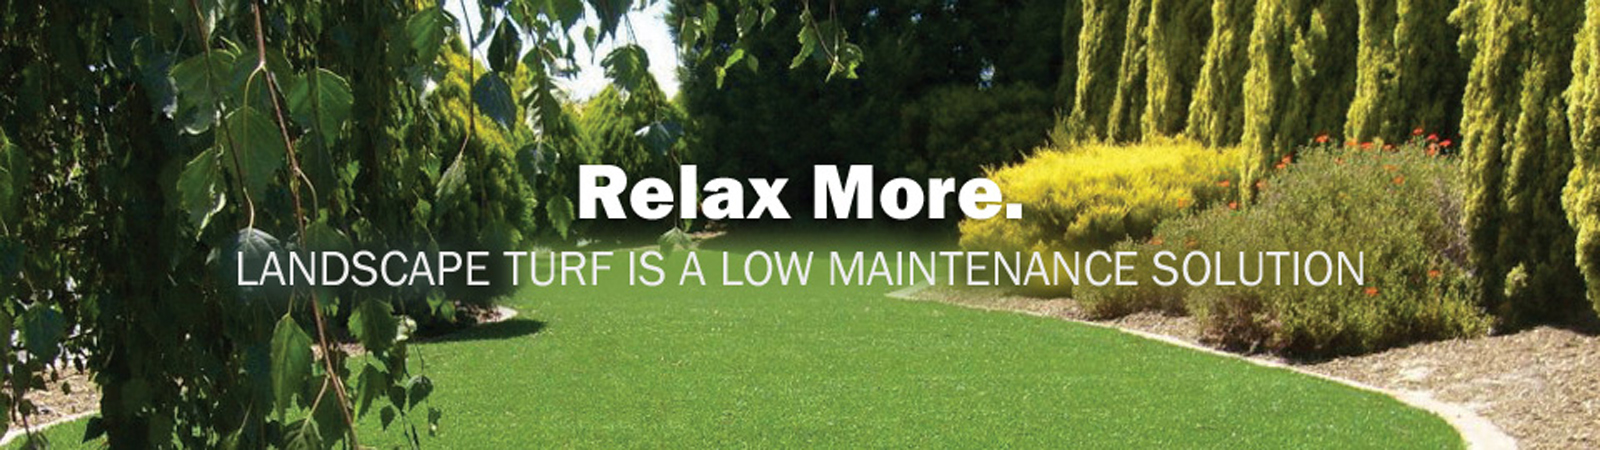 Relax More with Xtreme Lawn landscaping turf